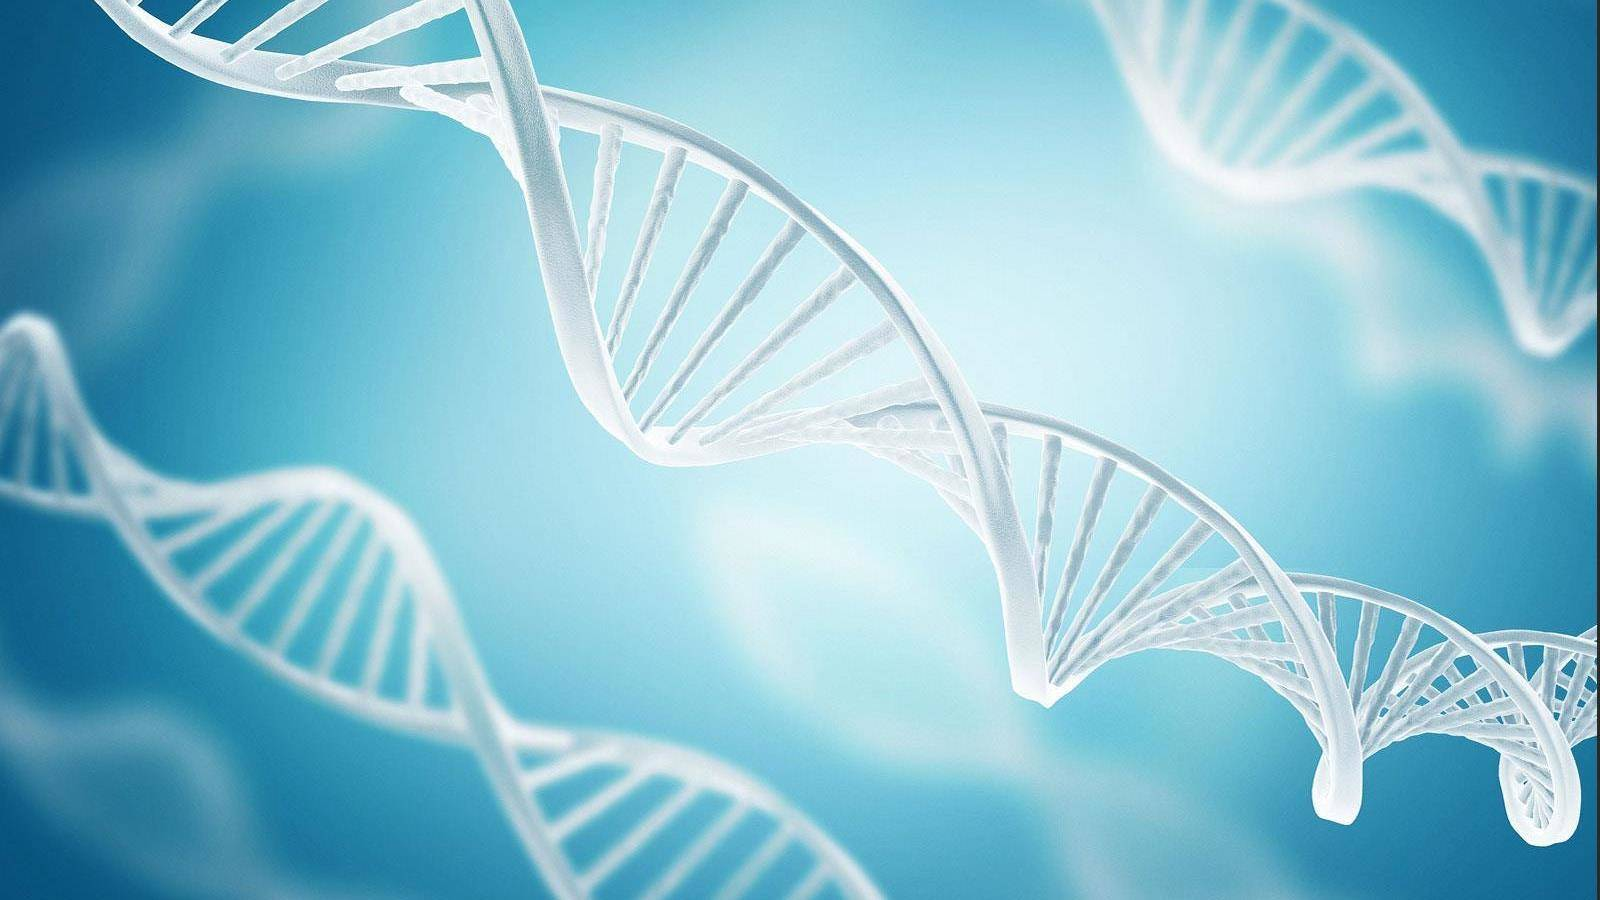 crispr cas9 history and engineering Derived from a microbial defense system, cas9 can be guided to specific locations within complex genomes by a short rna the development, applications, and future directions of the crispr-cas9 system for genome engineering are discussed here.